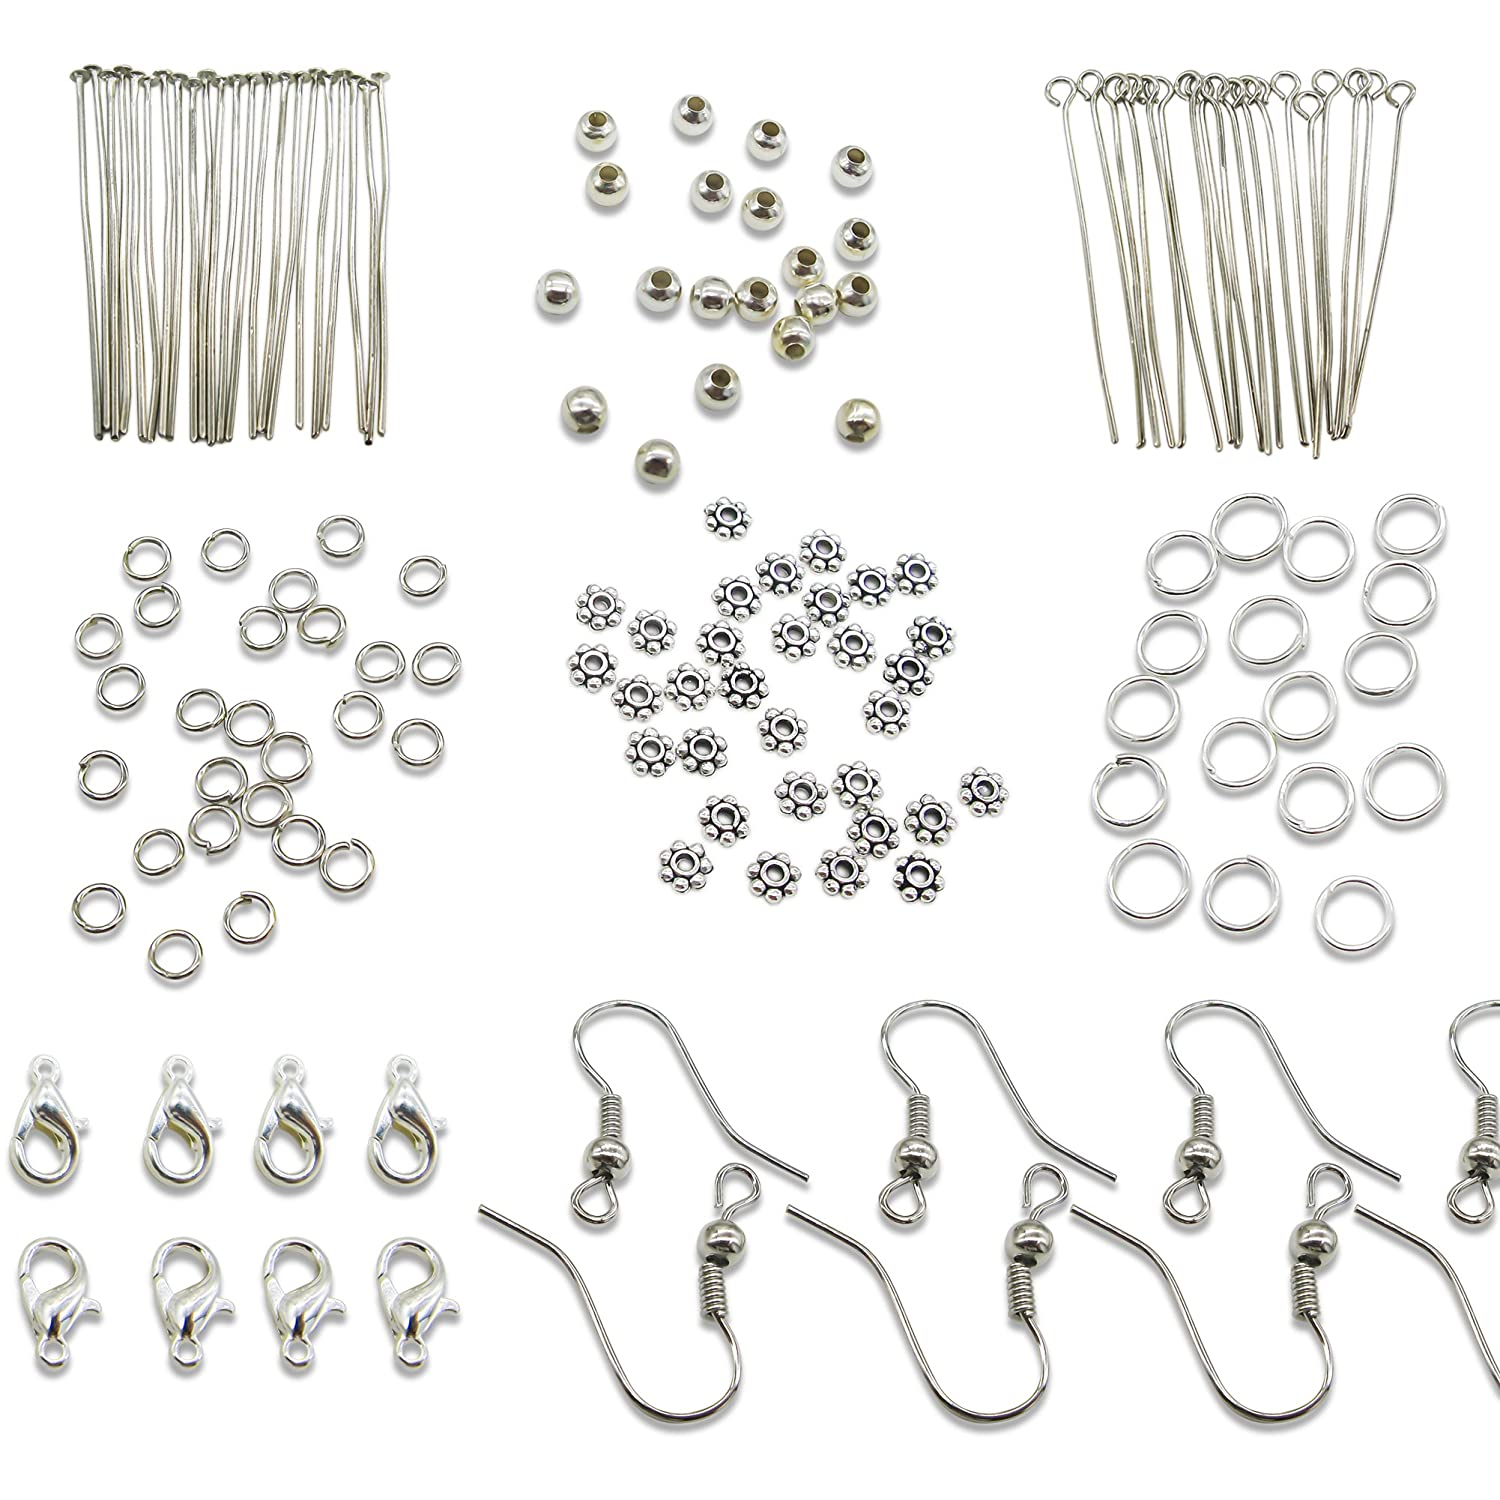 TOAOB Silver Jewelery Making Starter Kits findings Lobster Clasp Jump Rings Earring Hook Spacer Beads CLB0075